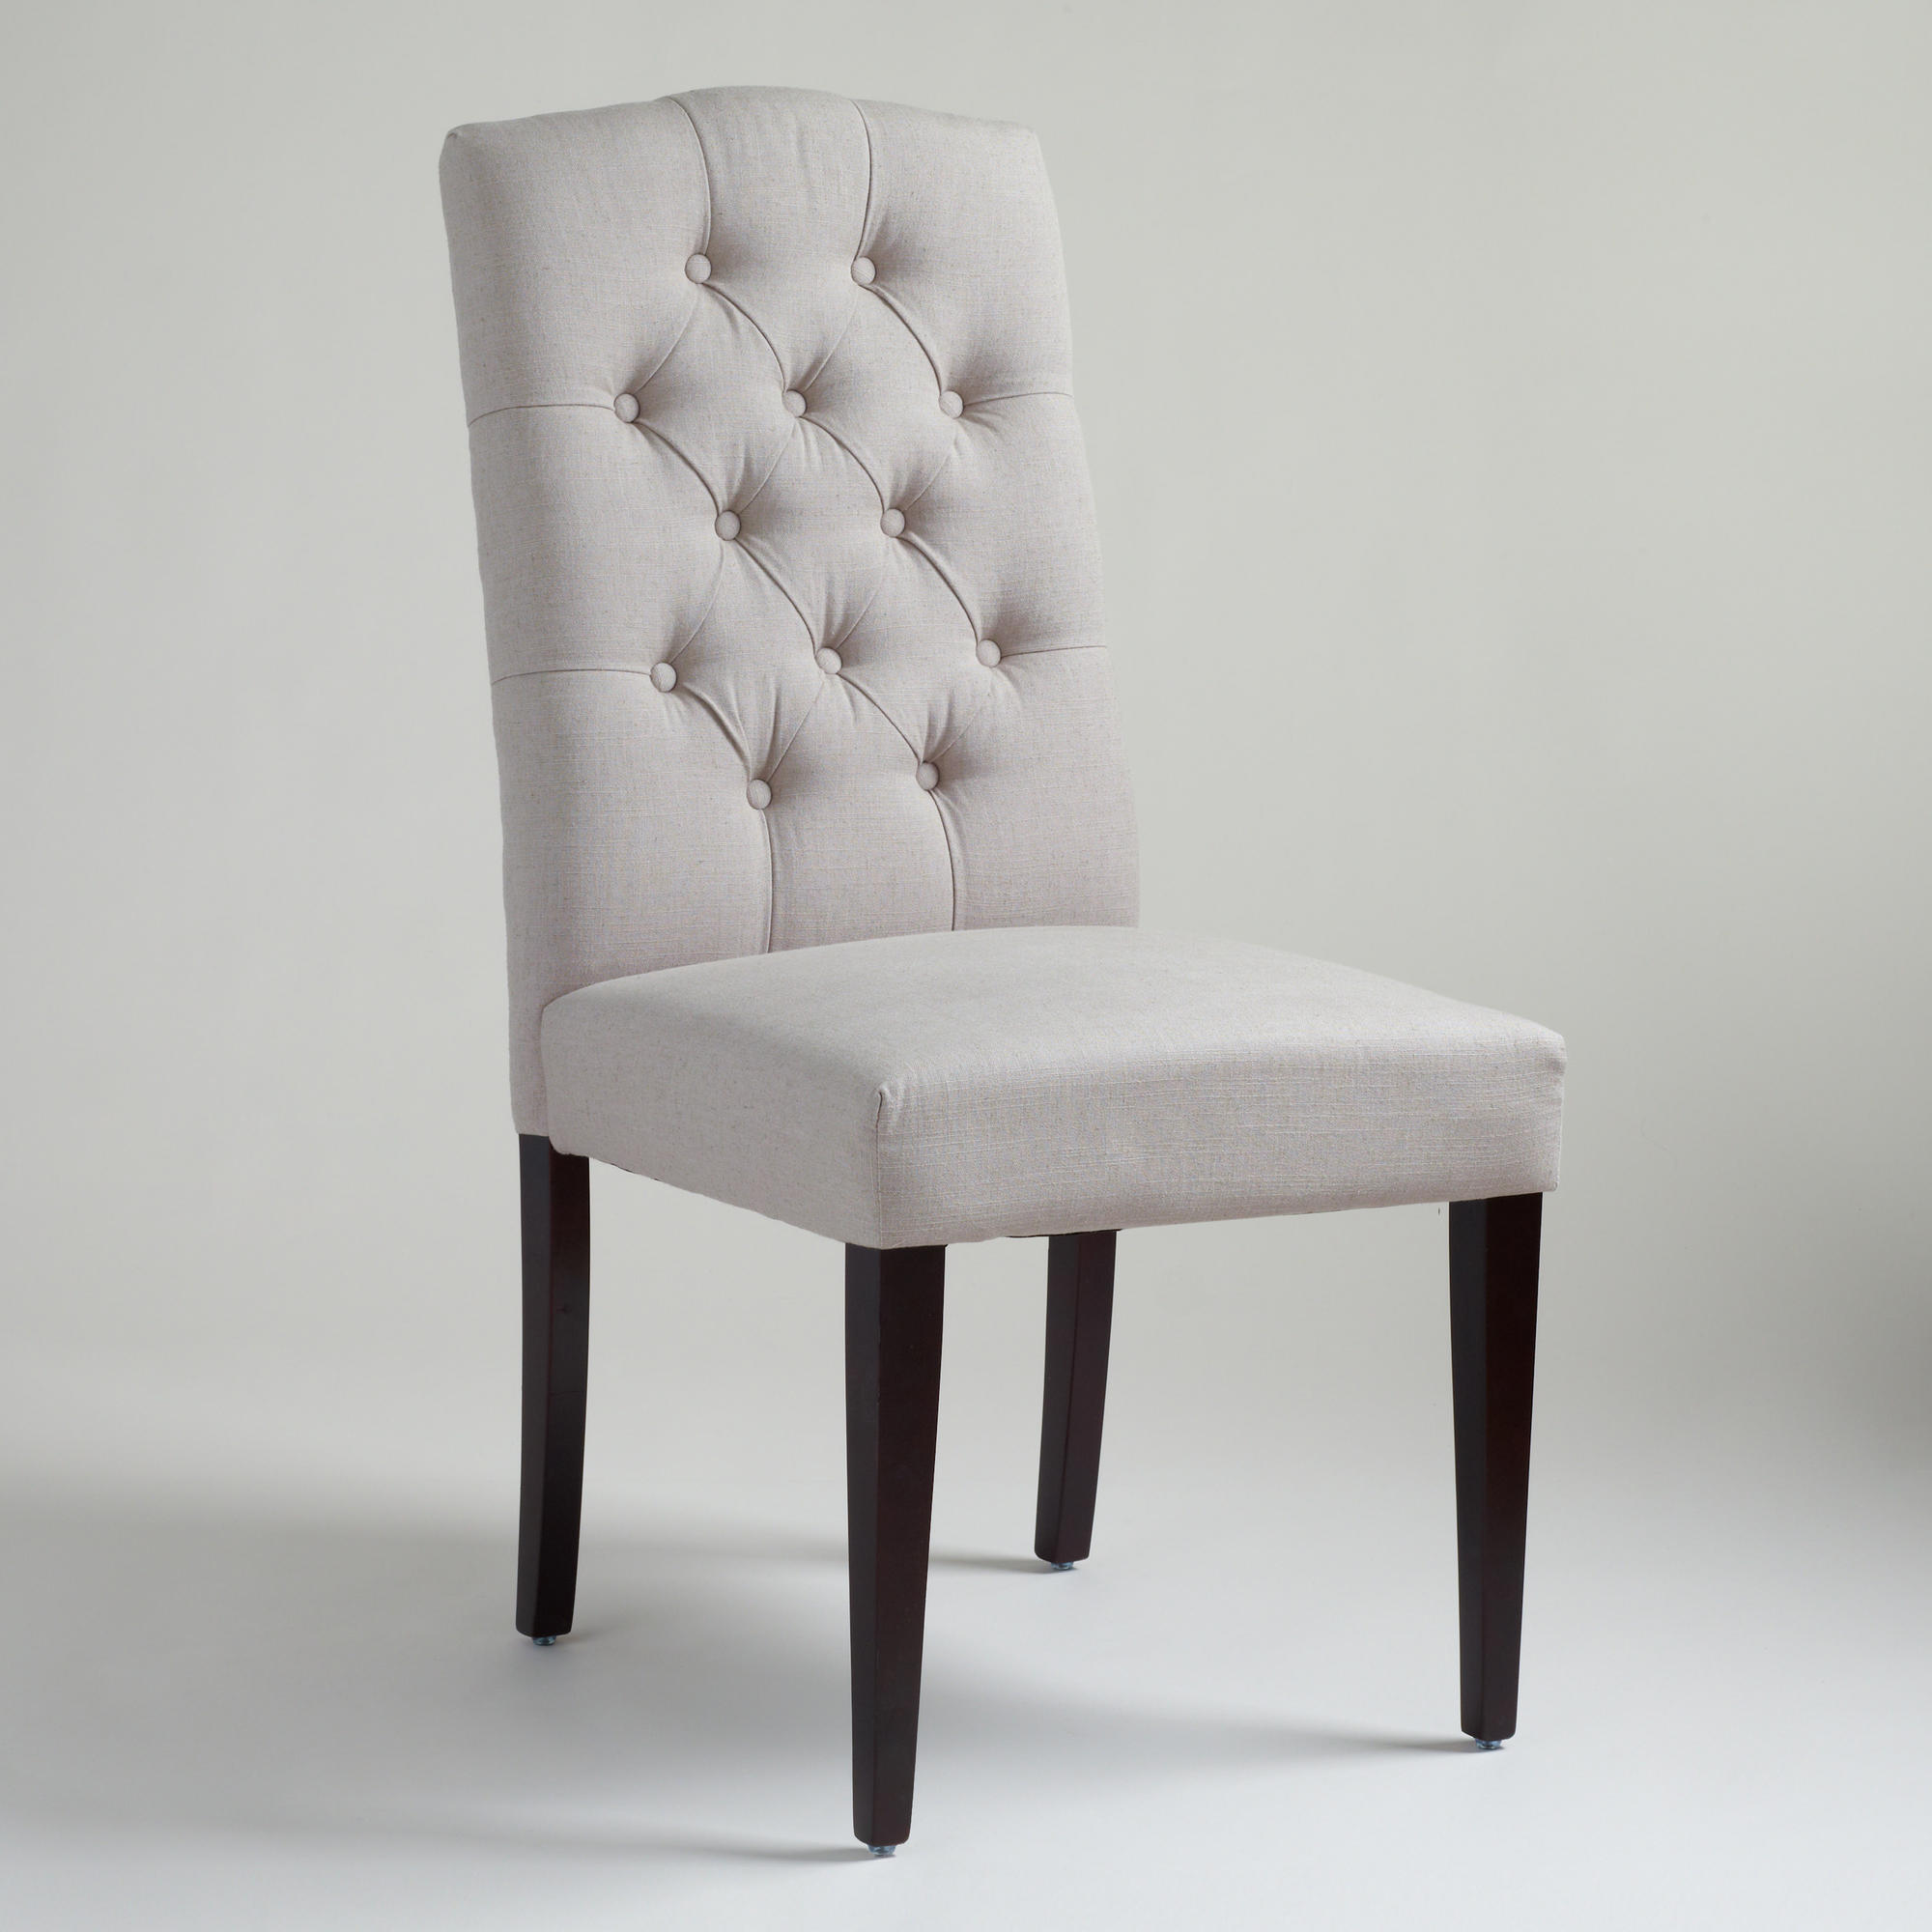 gray tufted chair 30 second stand rehab measures shop this look coral white navy and grey bedroom